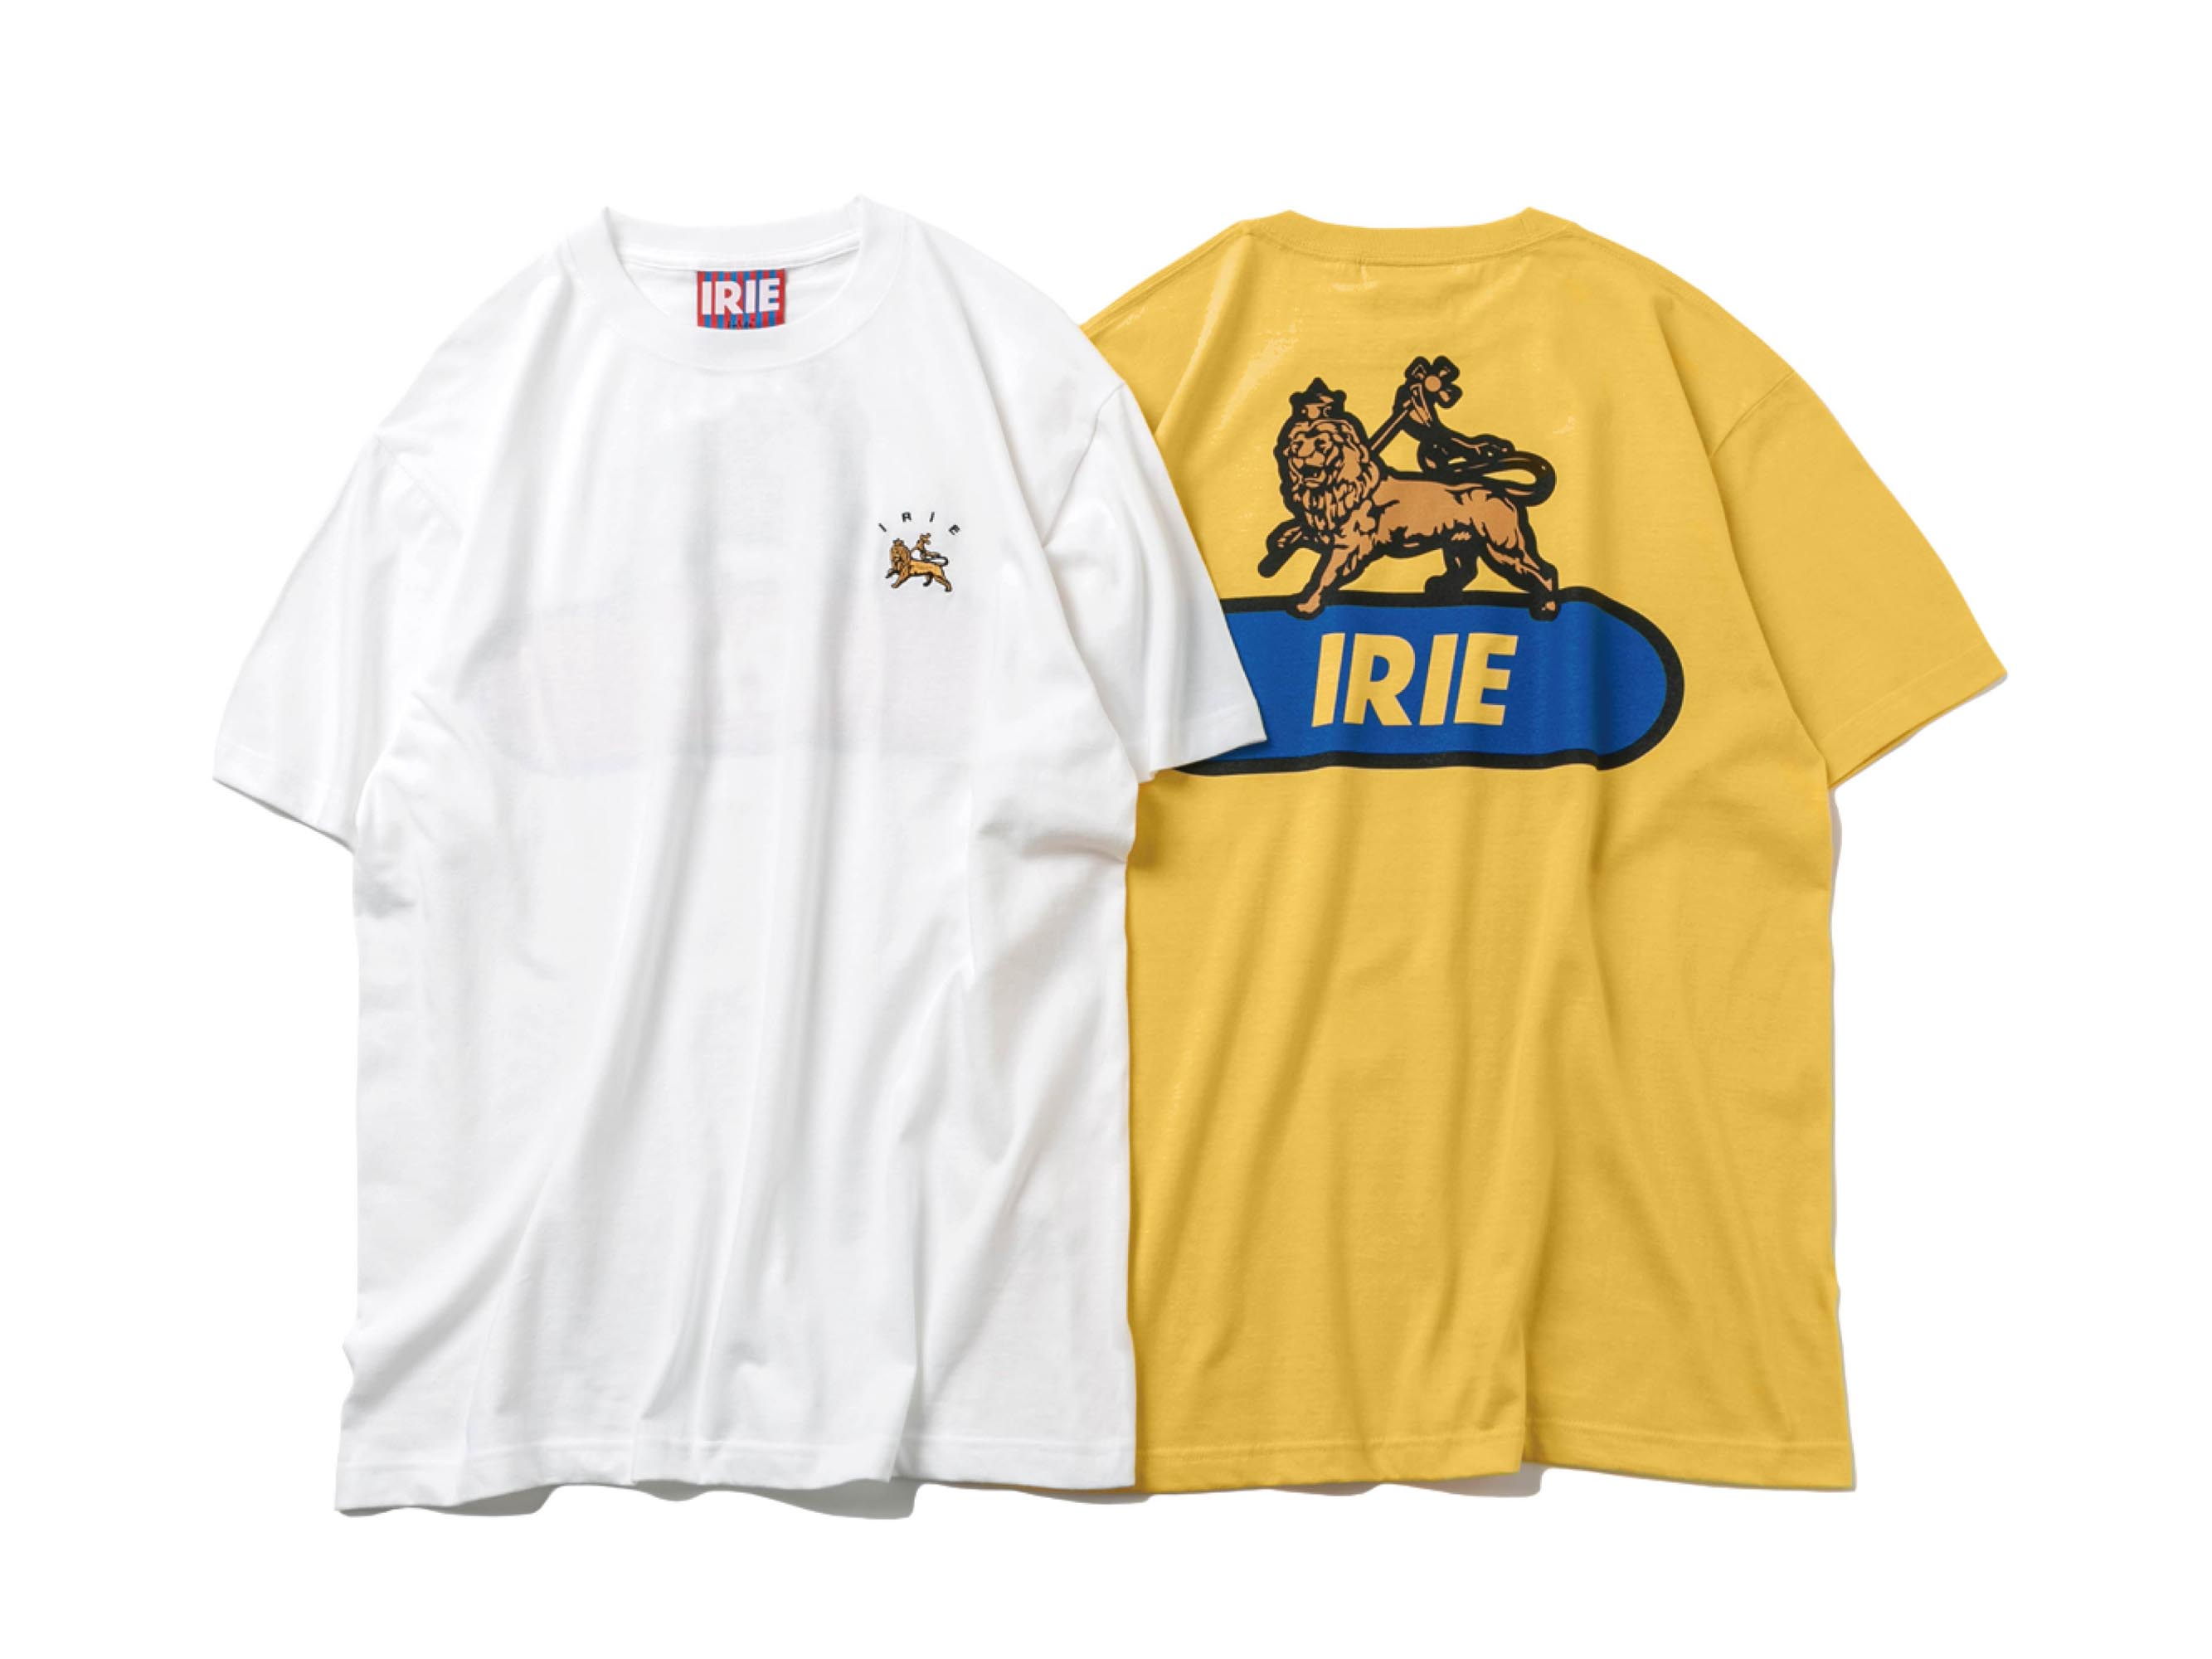 IRIE LION TEE - IRIE by irielife